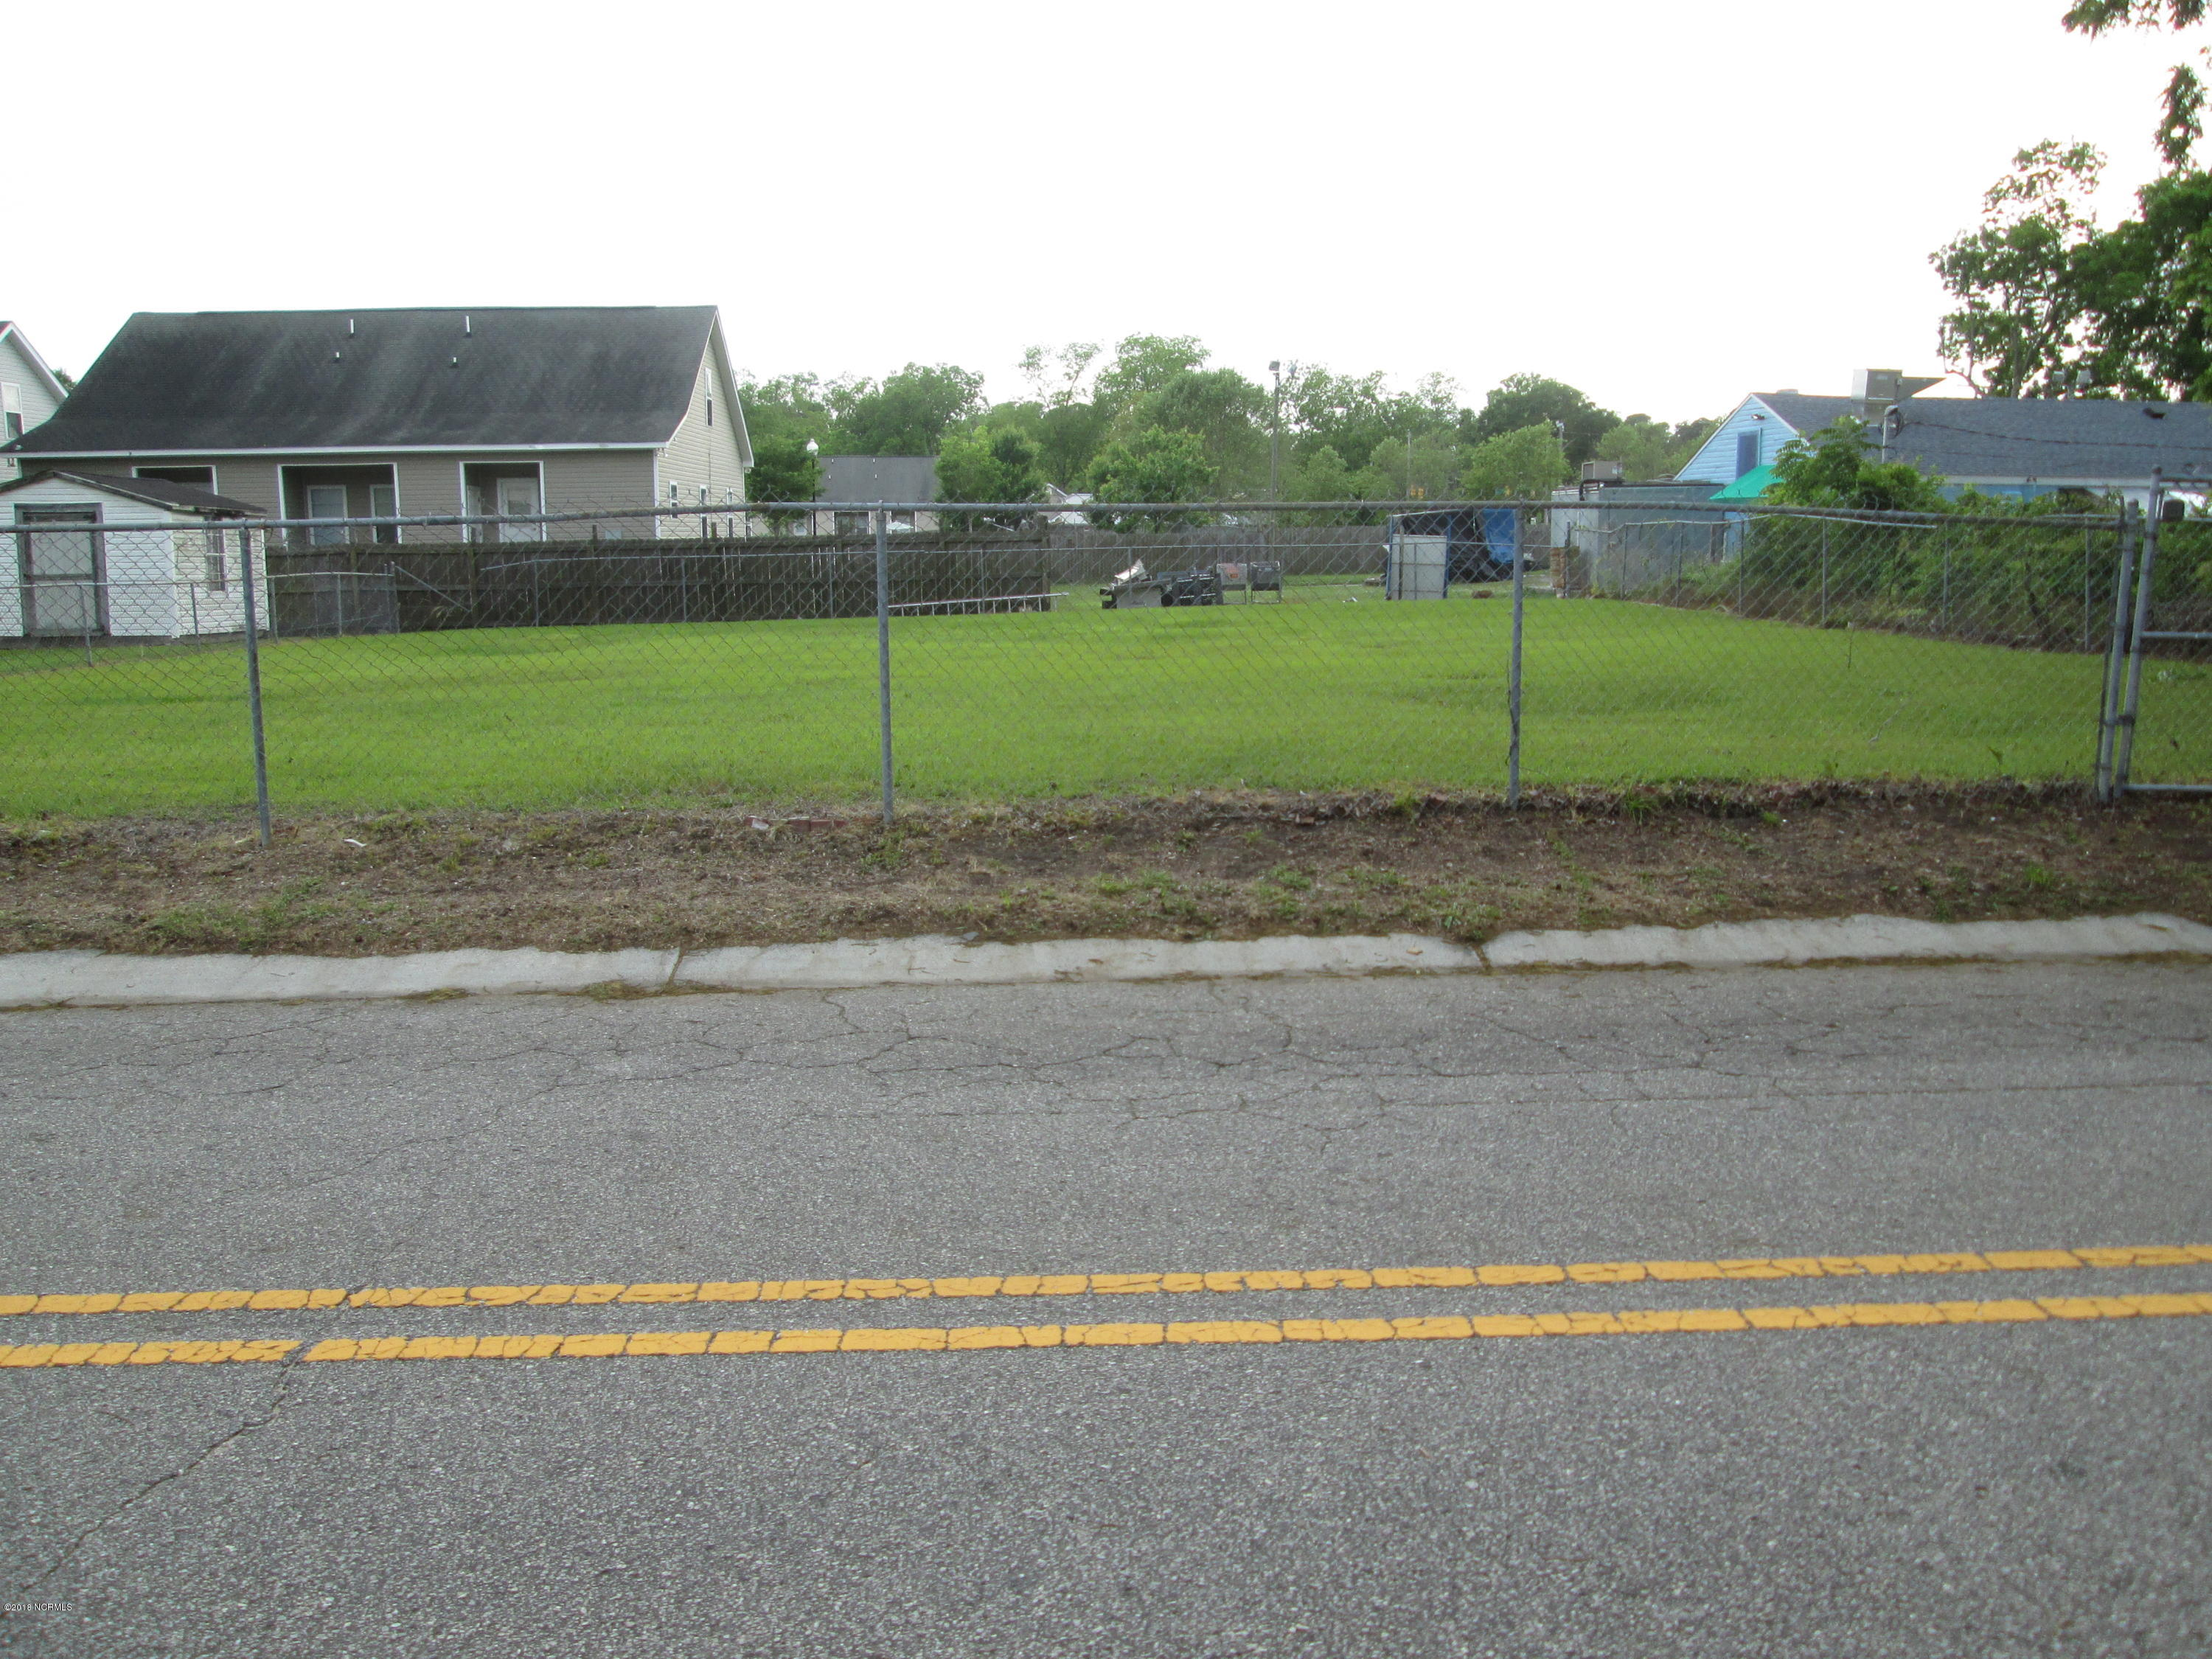 229 31st Street, Wilmington, North Carolina 28405, ,Residential land,For sale,31st,100144719